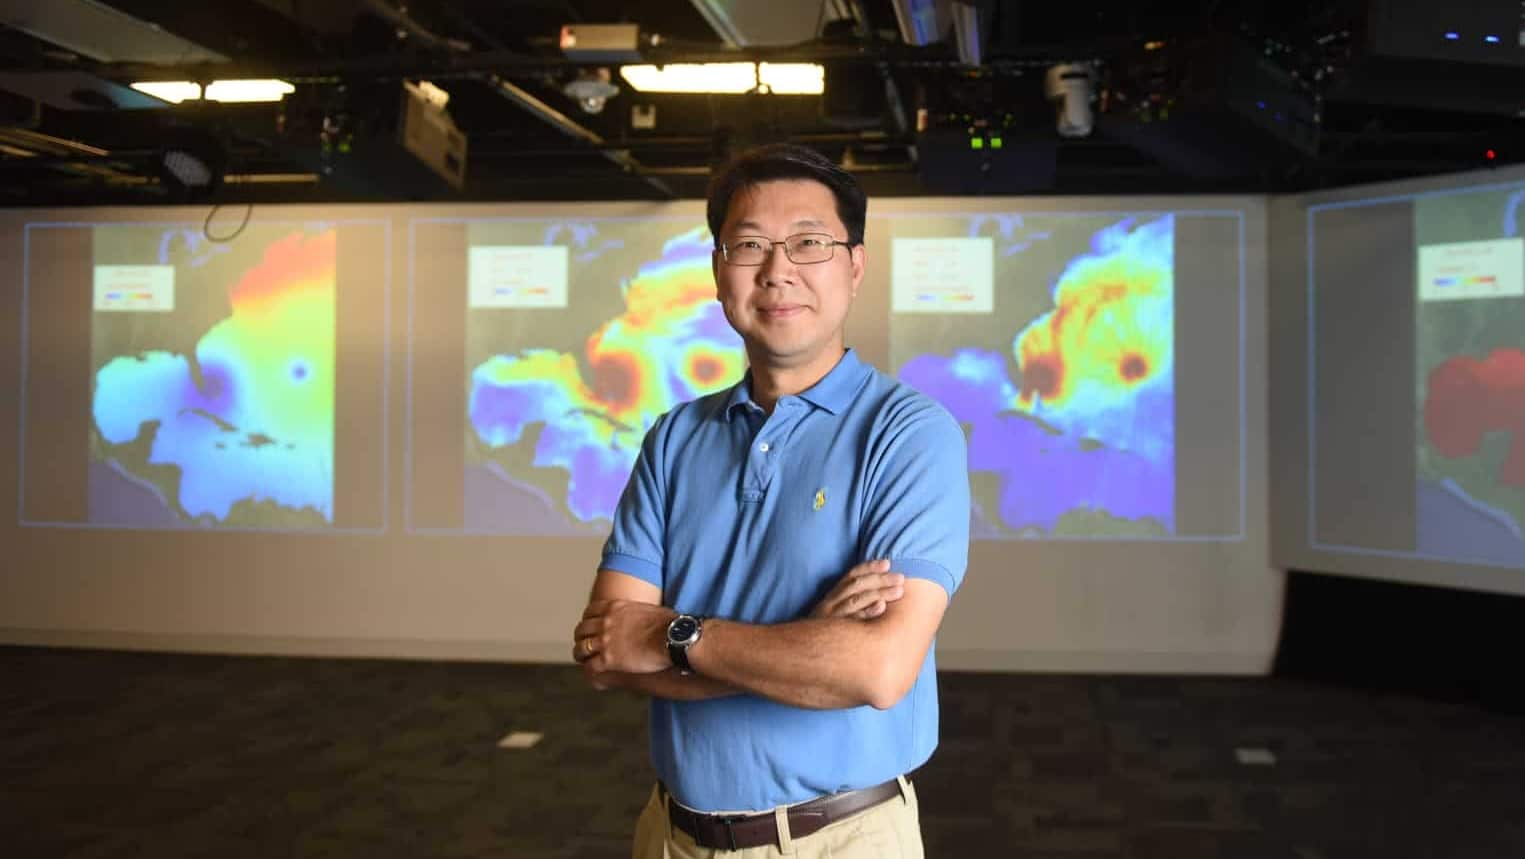 Ruoying He in front of a screen displaying ocean weather visualizations